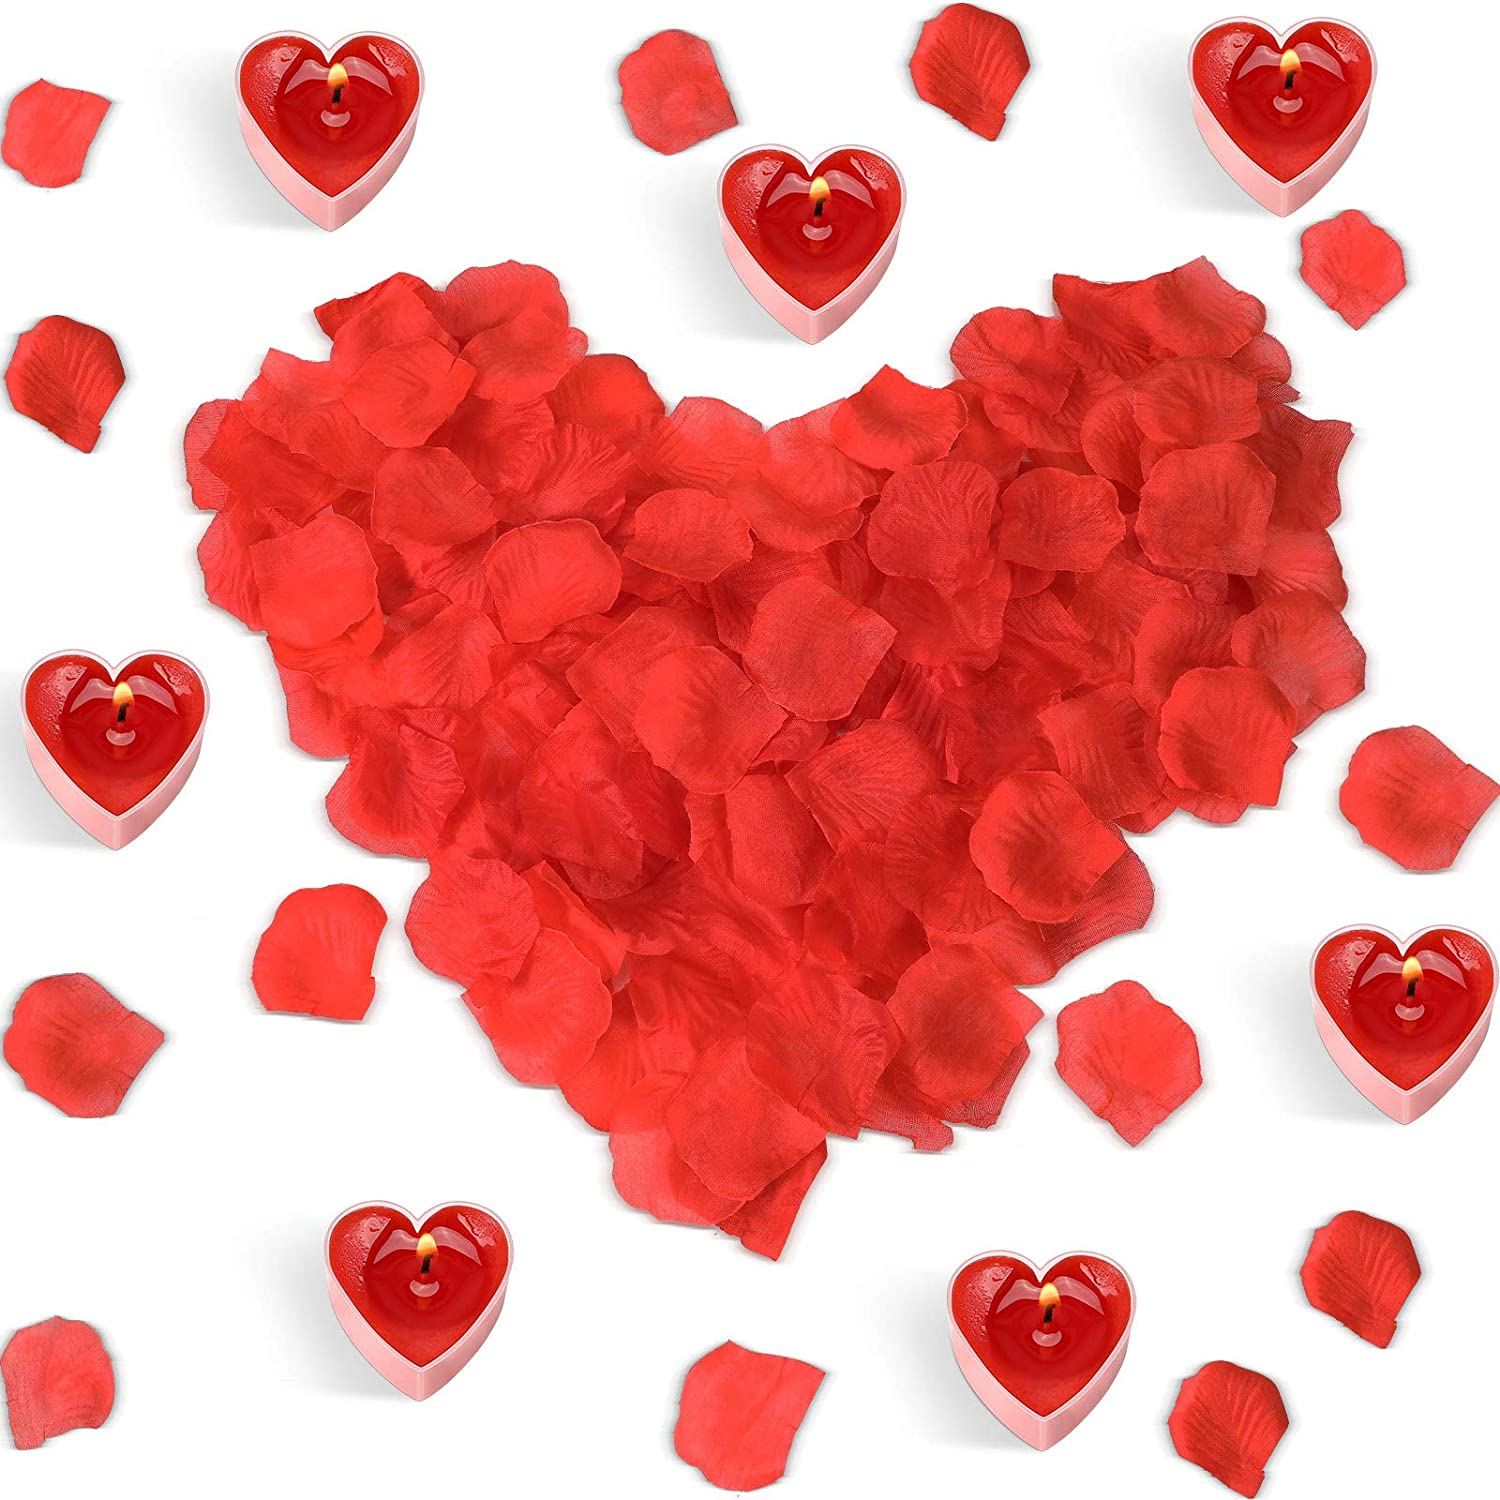 16 Pieces Heart Shape Candles Romantic Love Heart Candle with 300 Pieces Rose Petals, Heart Tealight Candles and Artificial Rose Scatter Petal for Valentine's Day Wedding Table Aisle Centerpiece Decor